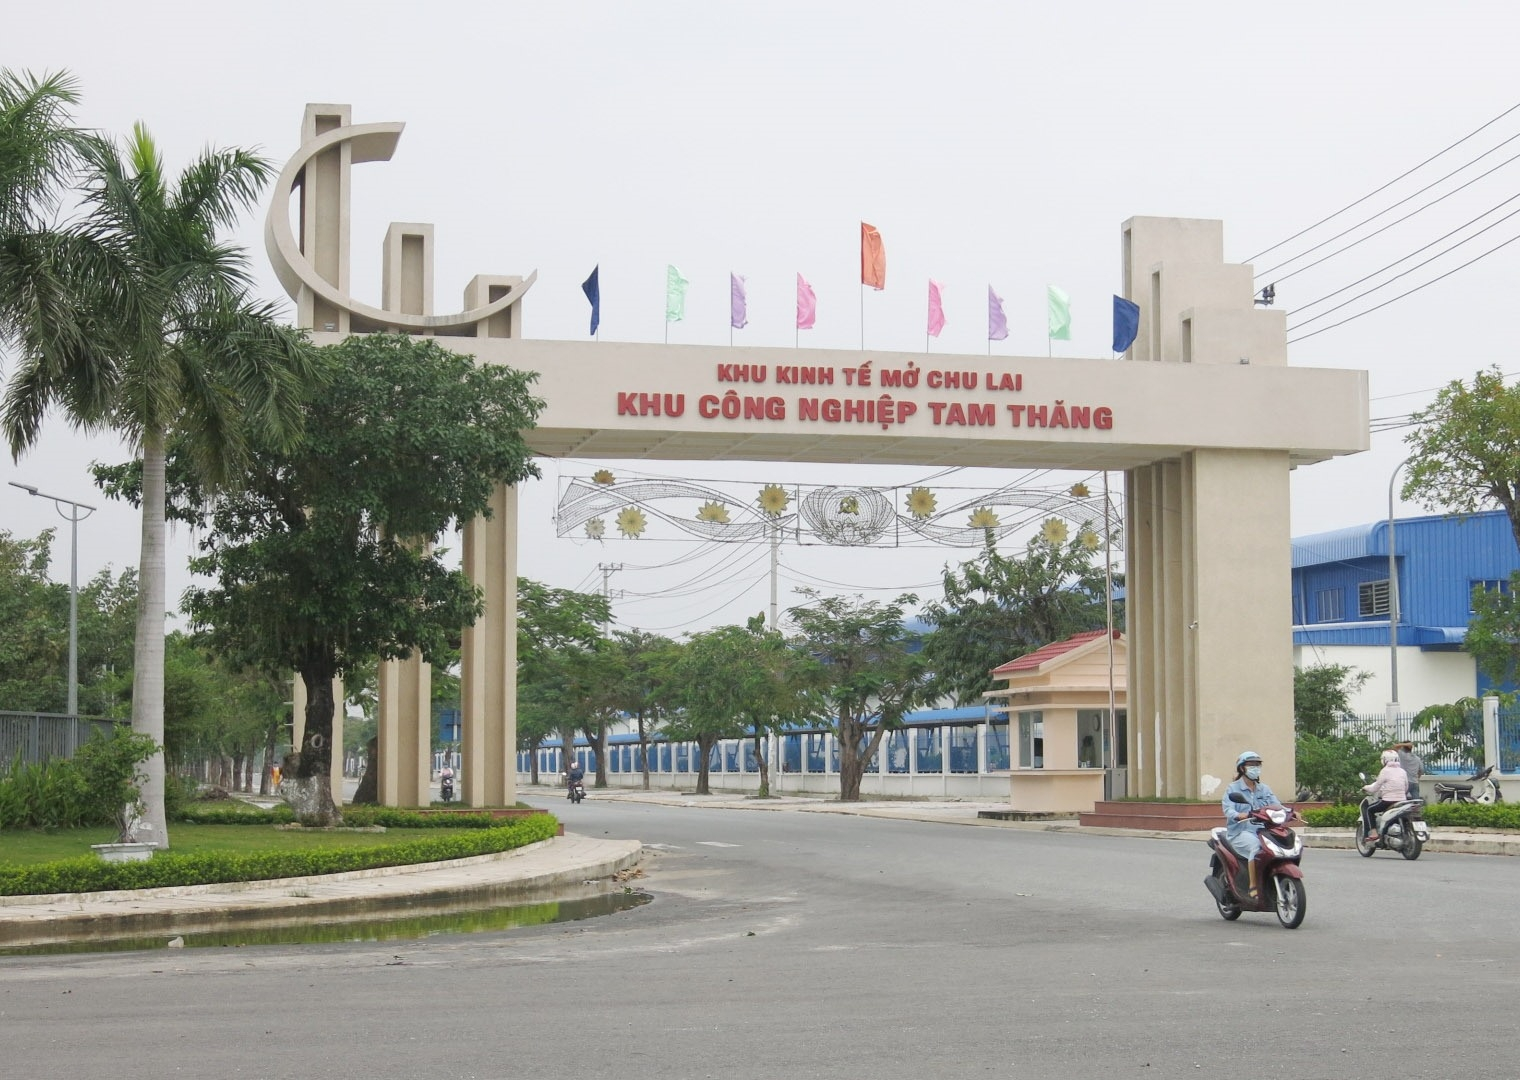 Panko Corporation expands footprint in Quang Nam province